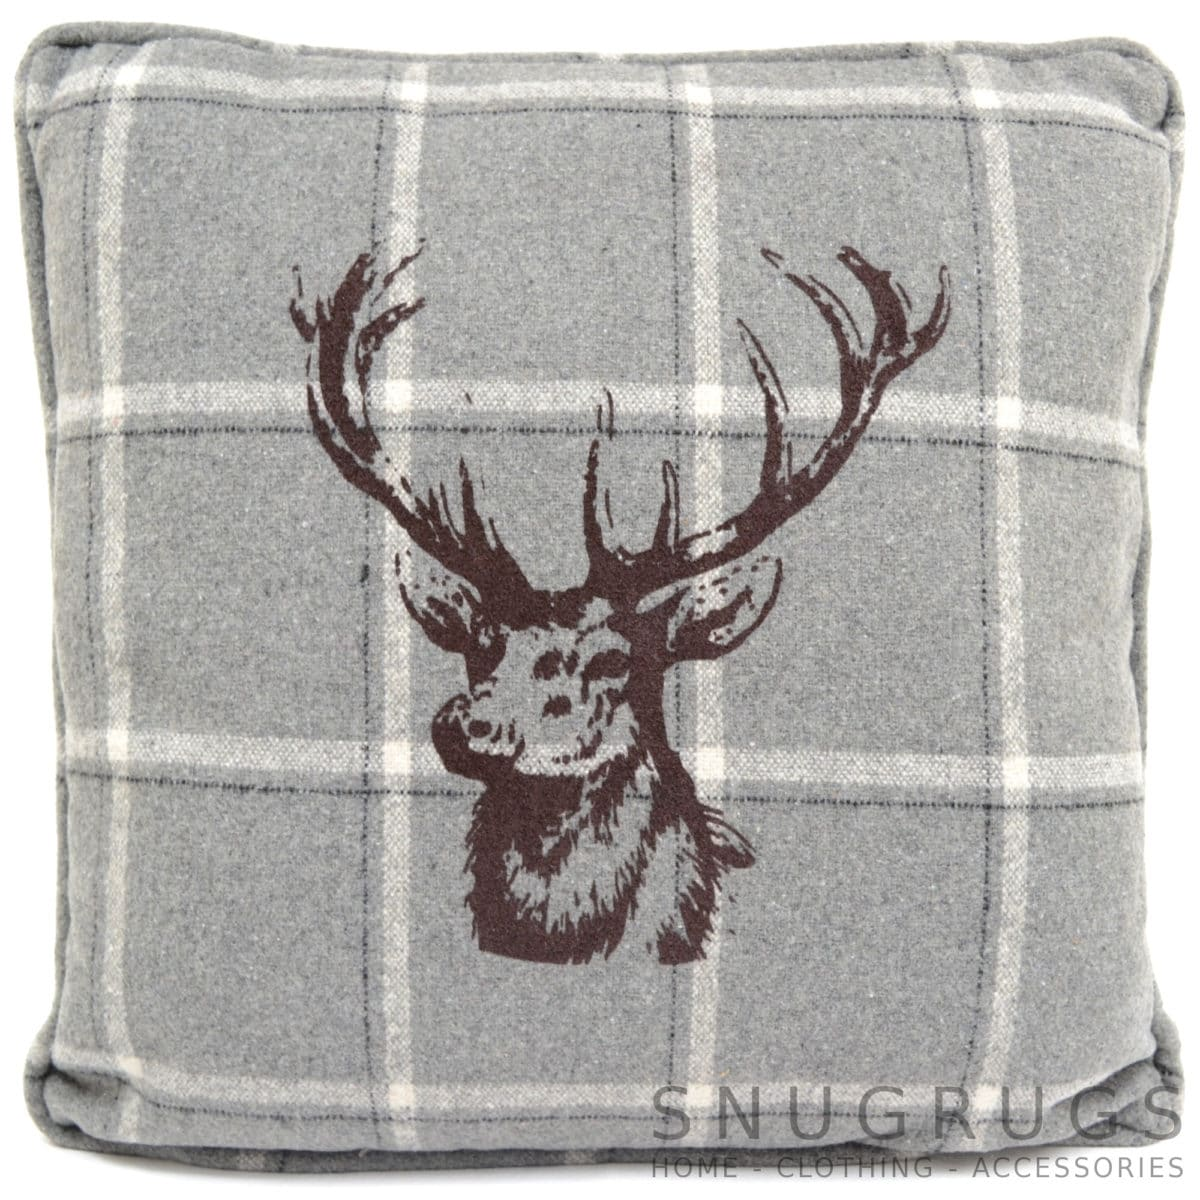 Country Style Checked Stag Head Cushion - Grey/White Checked